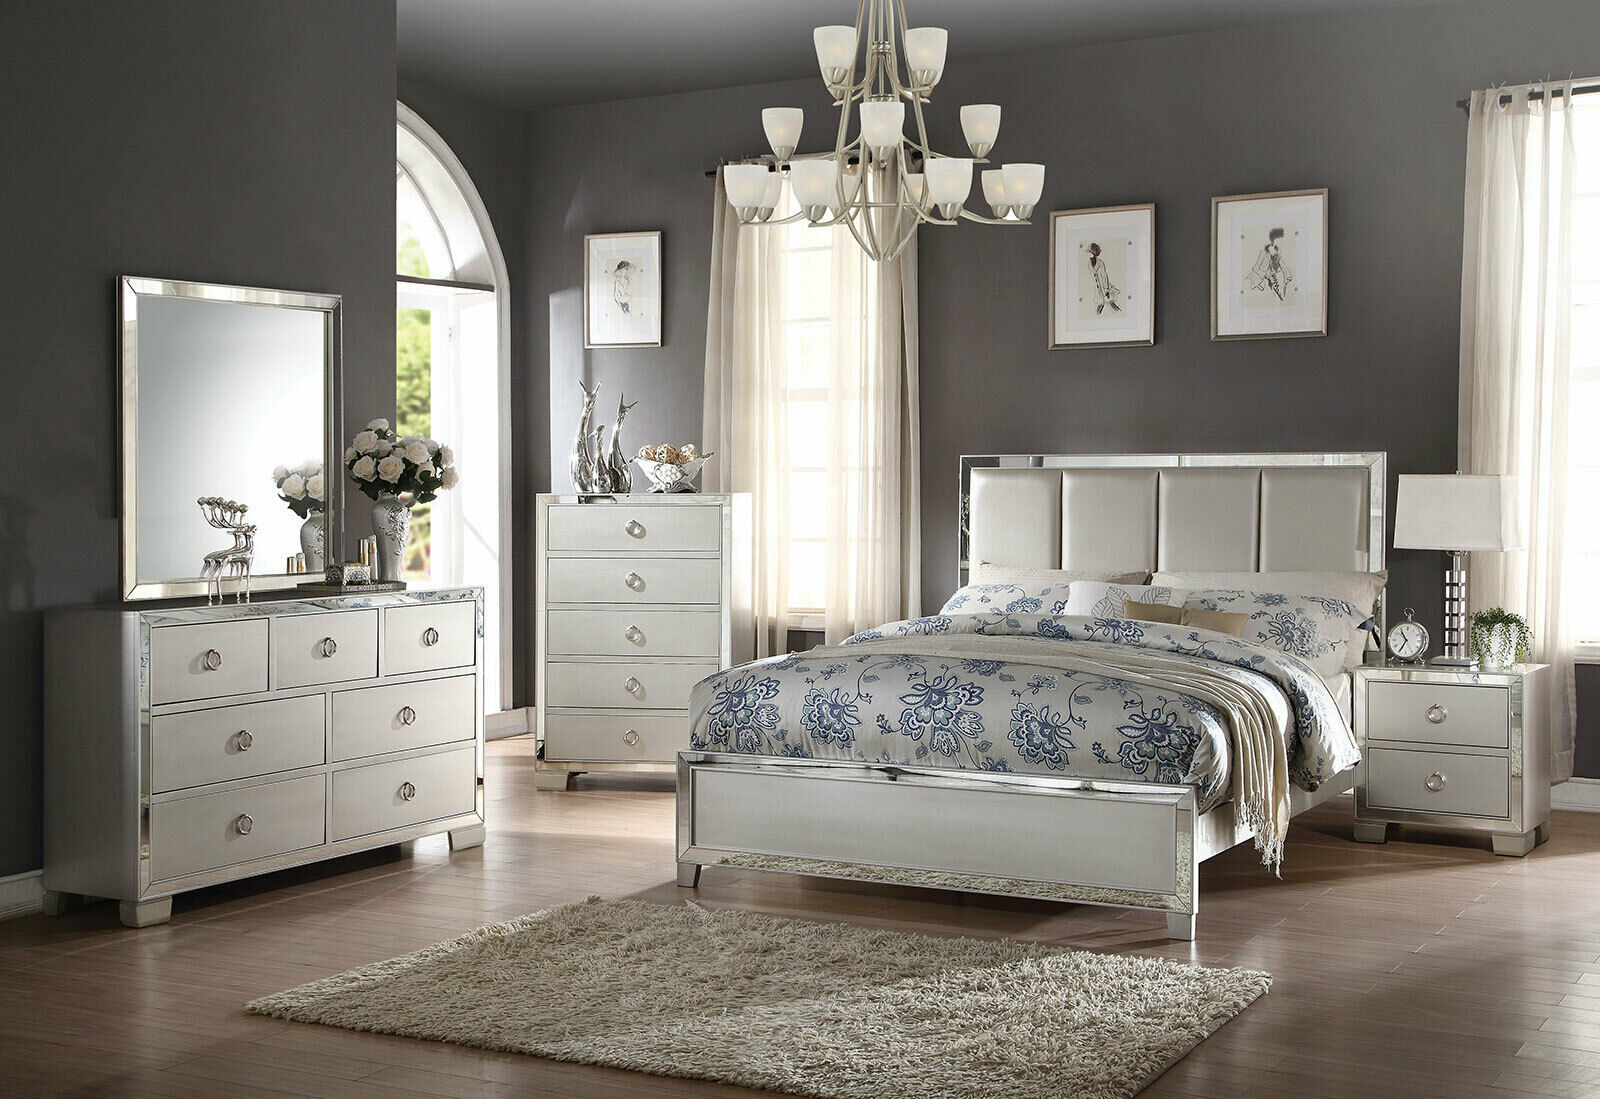 New transitional style platinum bedroom furniture harlan - Transitional style bedroom furniture ...